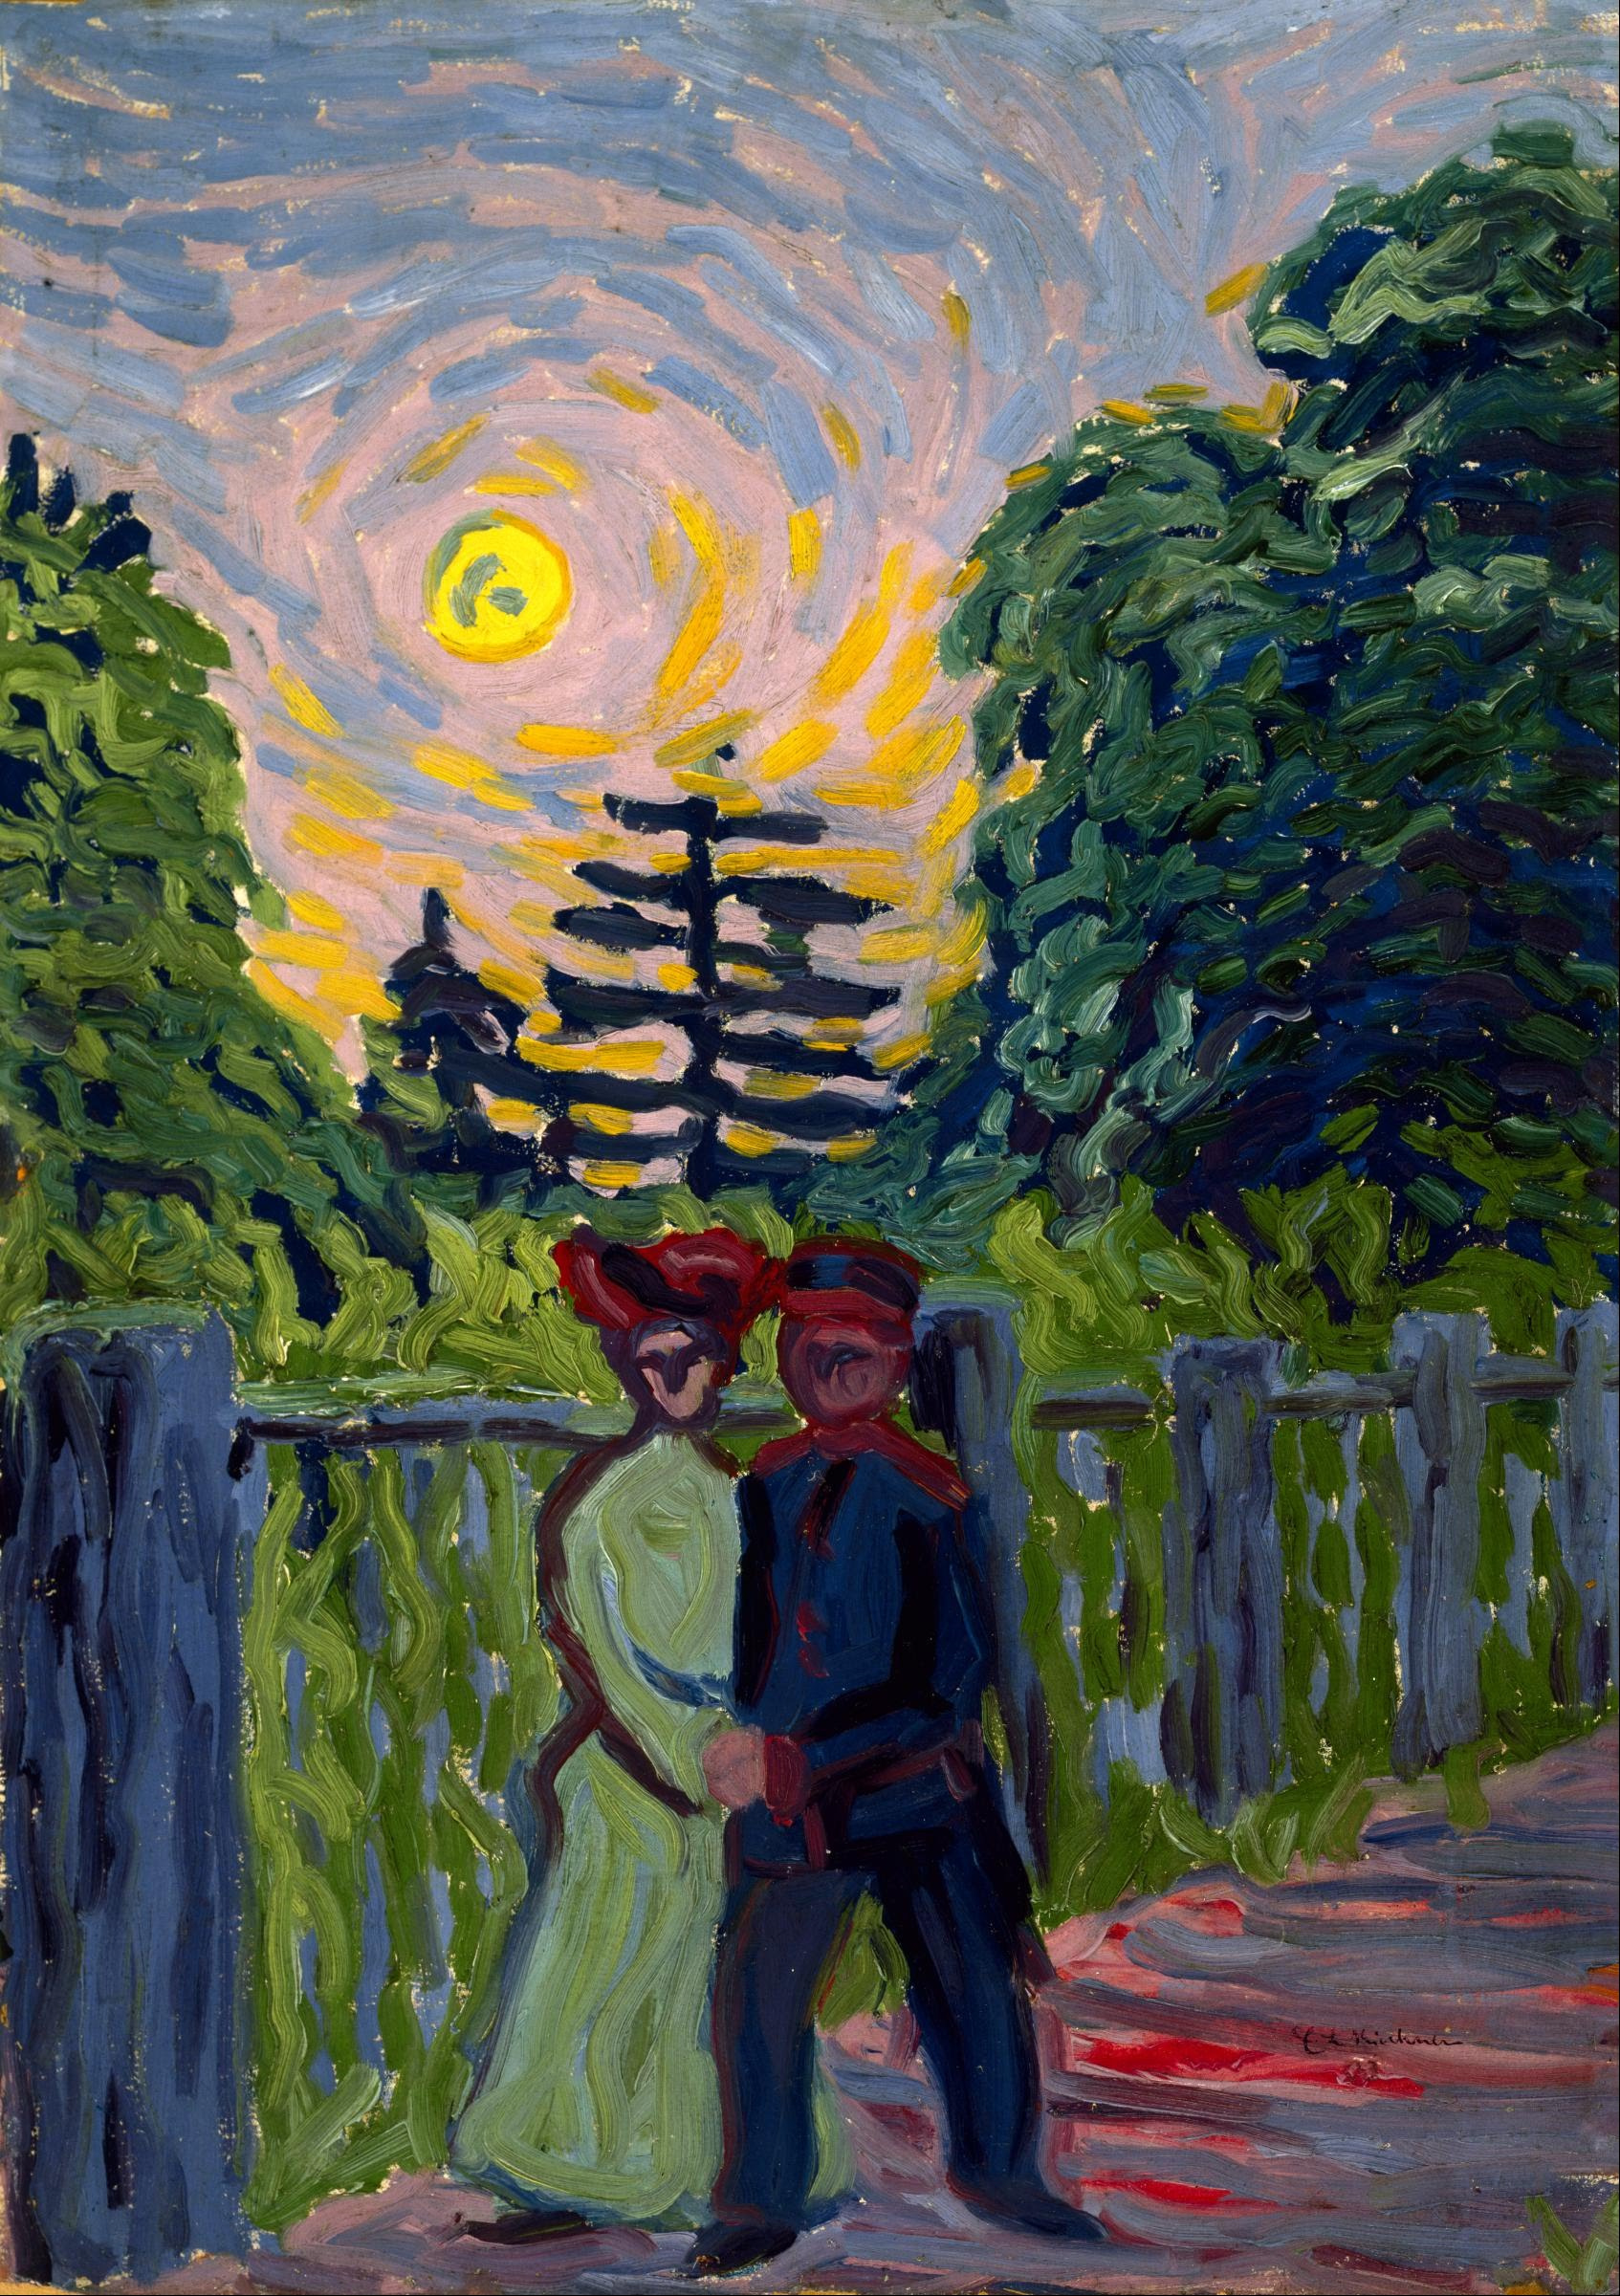 Ernst_Ludwig_Kirchner_-_Moonrise-_Soldier_and_Maiden.jpg